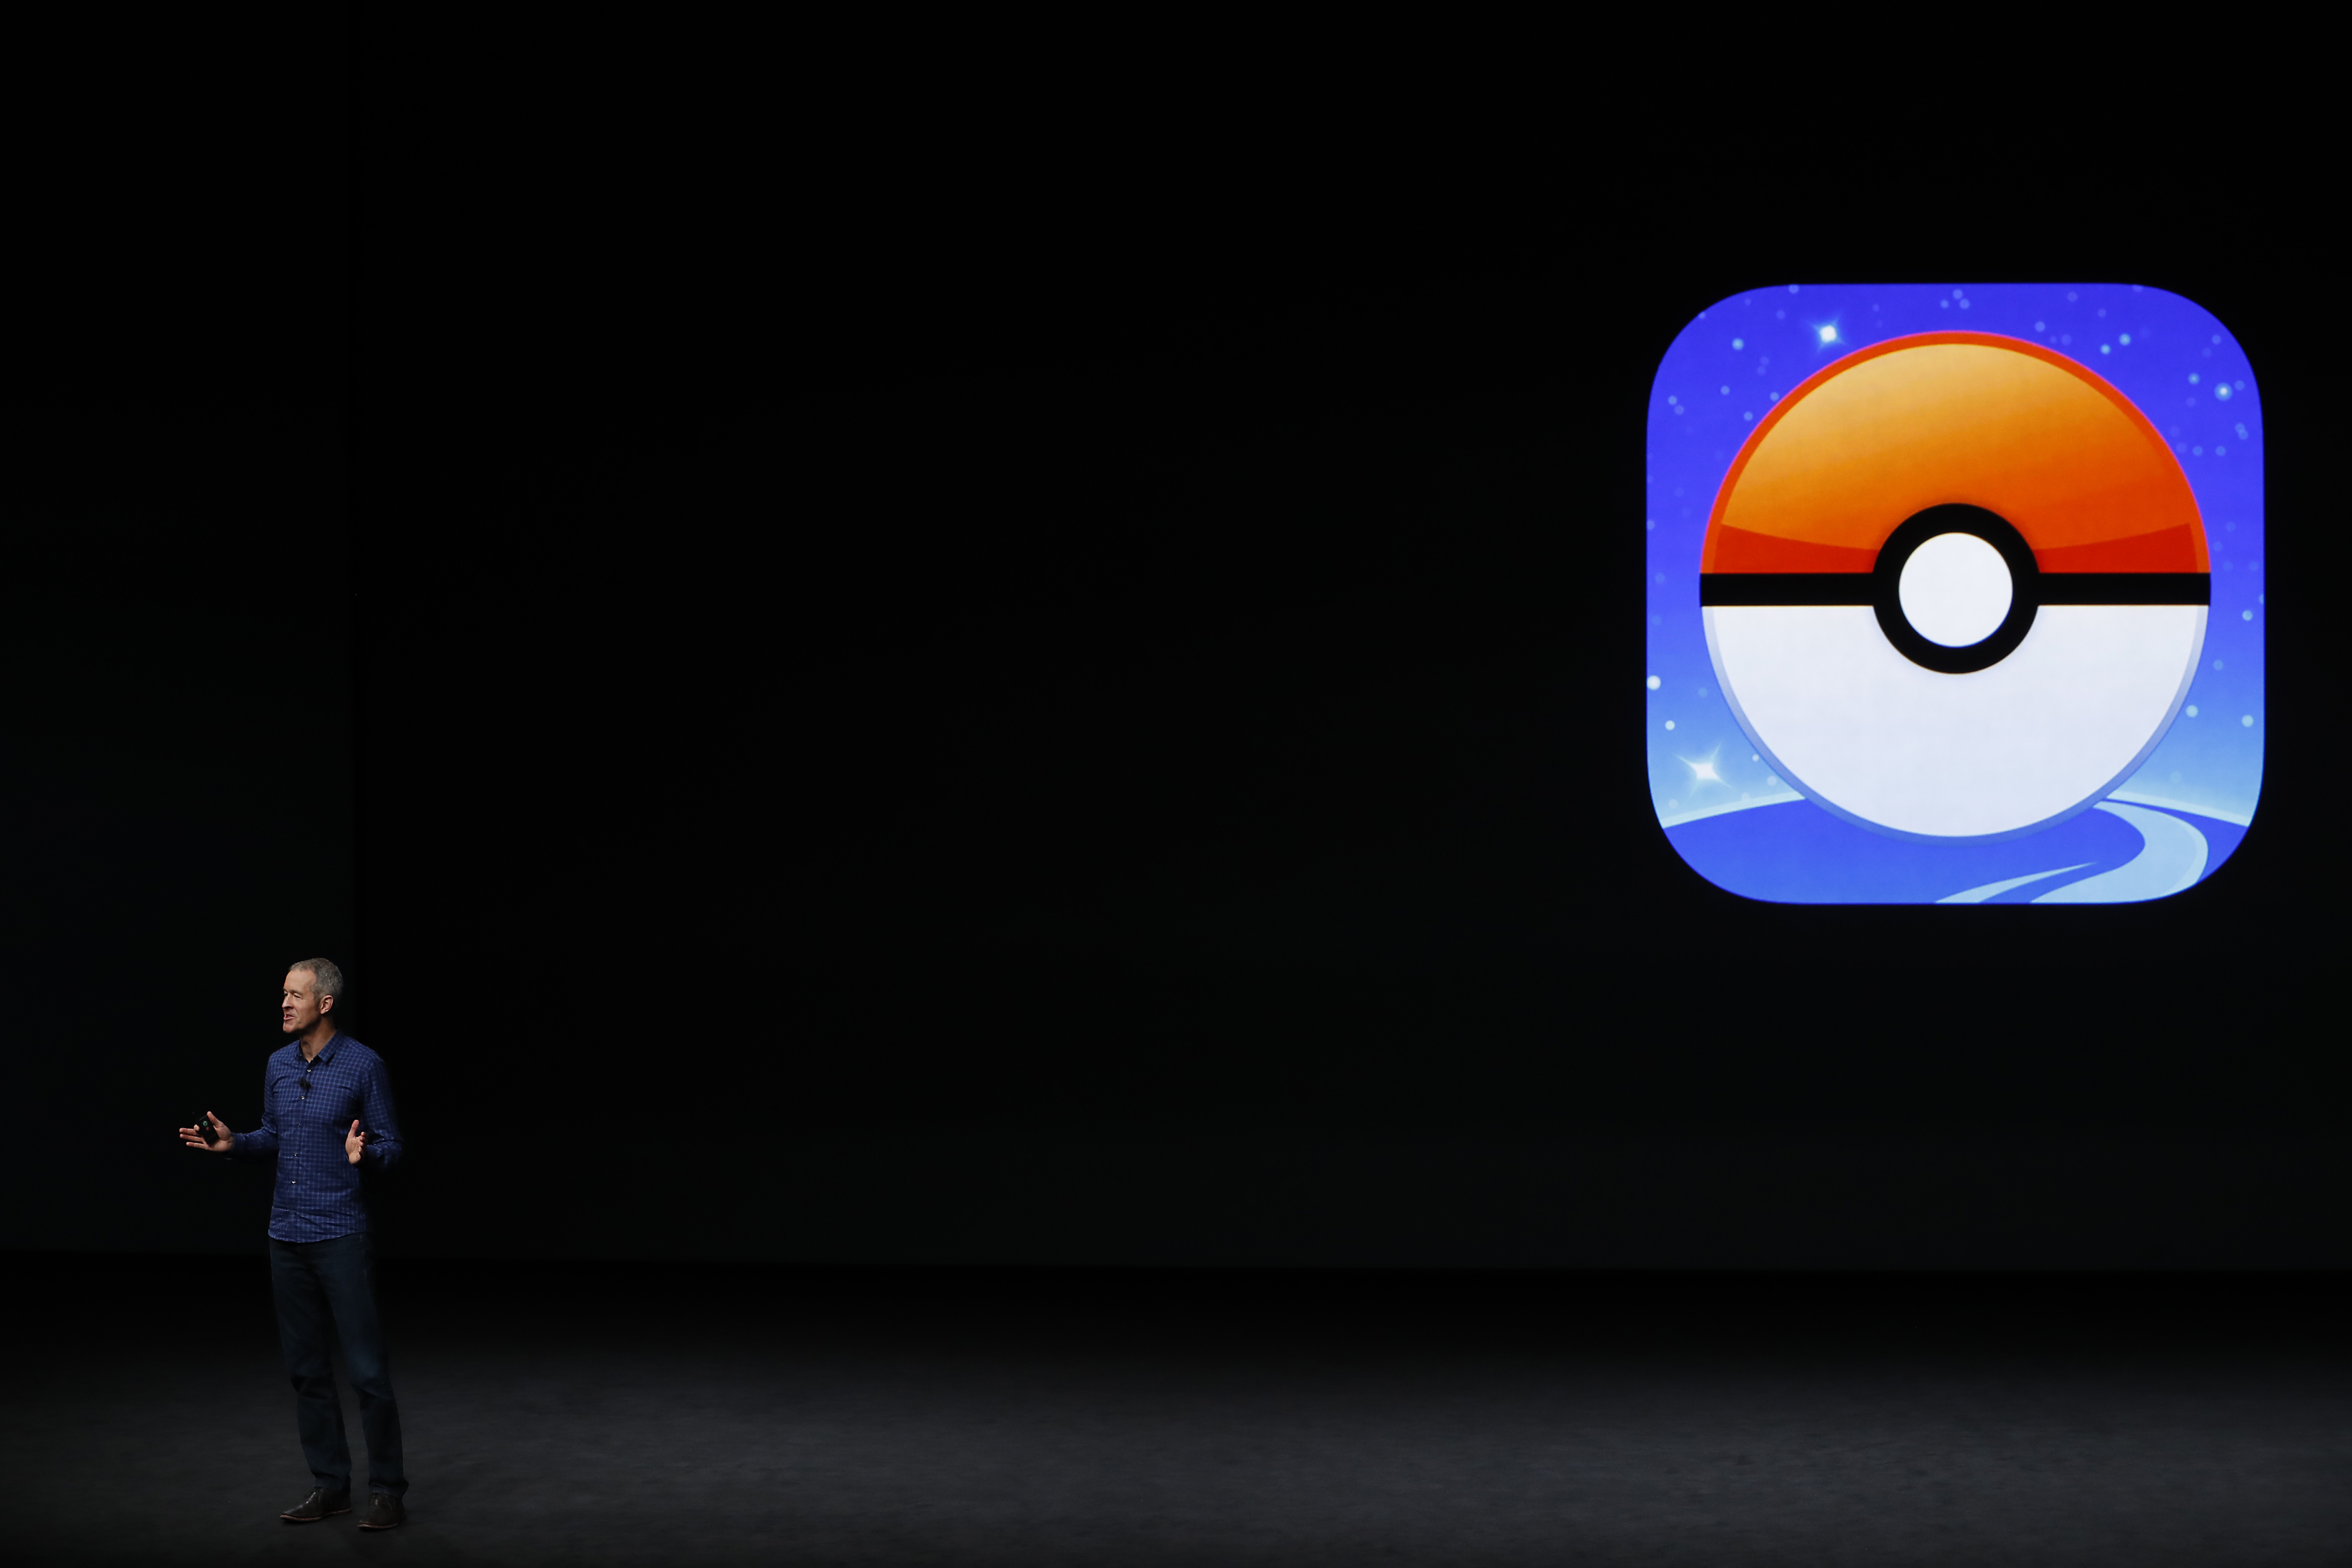 Apple COO Jeff Williams announces Pokemon Go for Apple Watch during a launch event on September 7, 2016 in San Francisco, California.